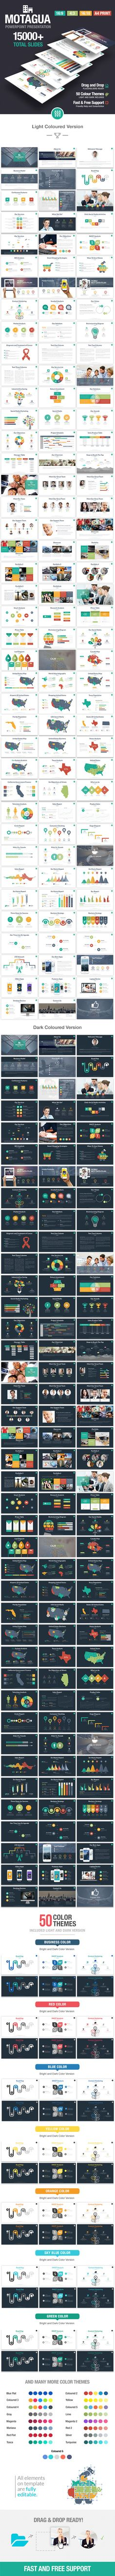 Motagua - Multipurpose PowerPoint Template #powerpoint #powerpointtemplate Download: http://graphicriver.net/item/motagua-multipurpose-powerpoint-template/10348960?ref=ksioks